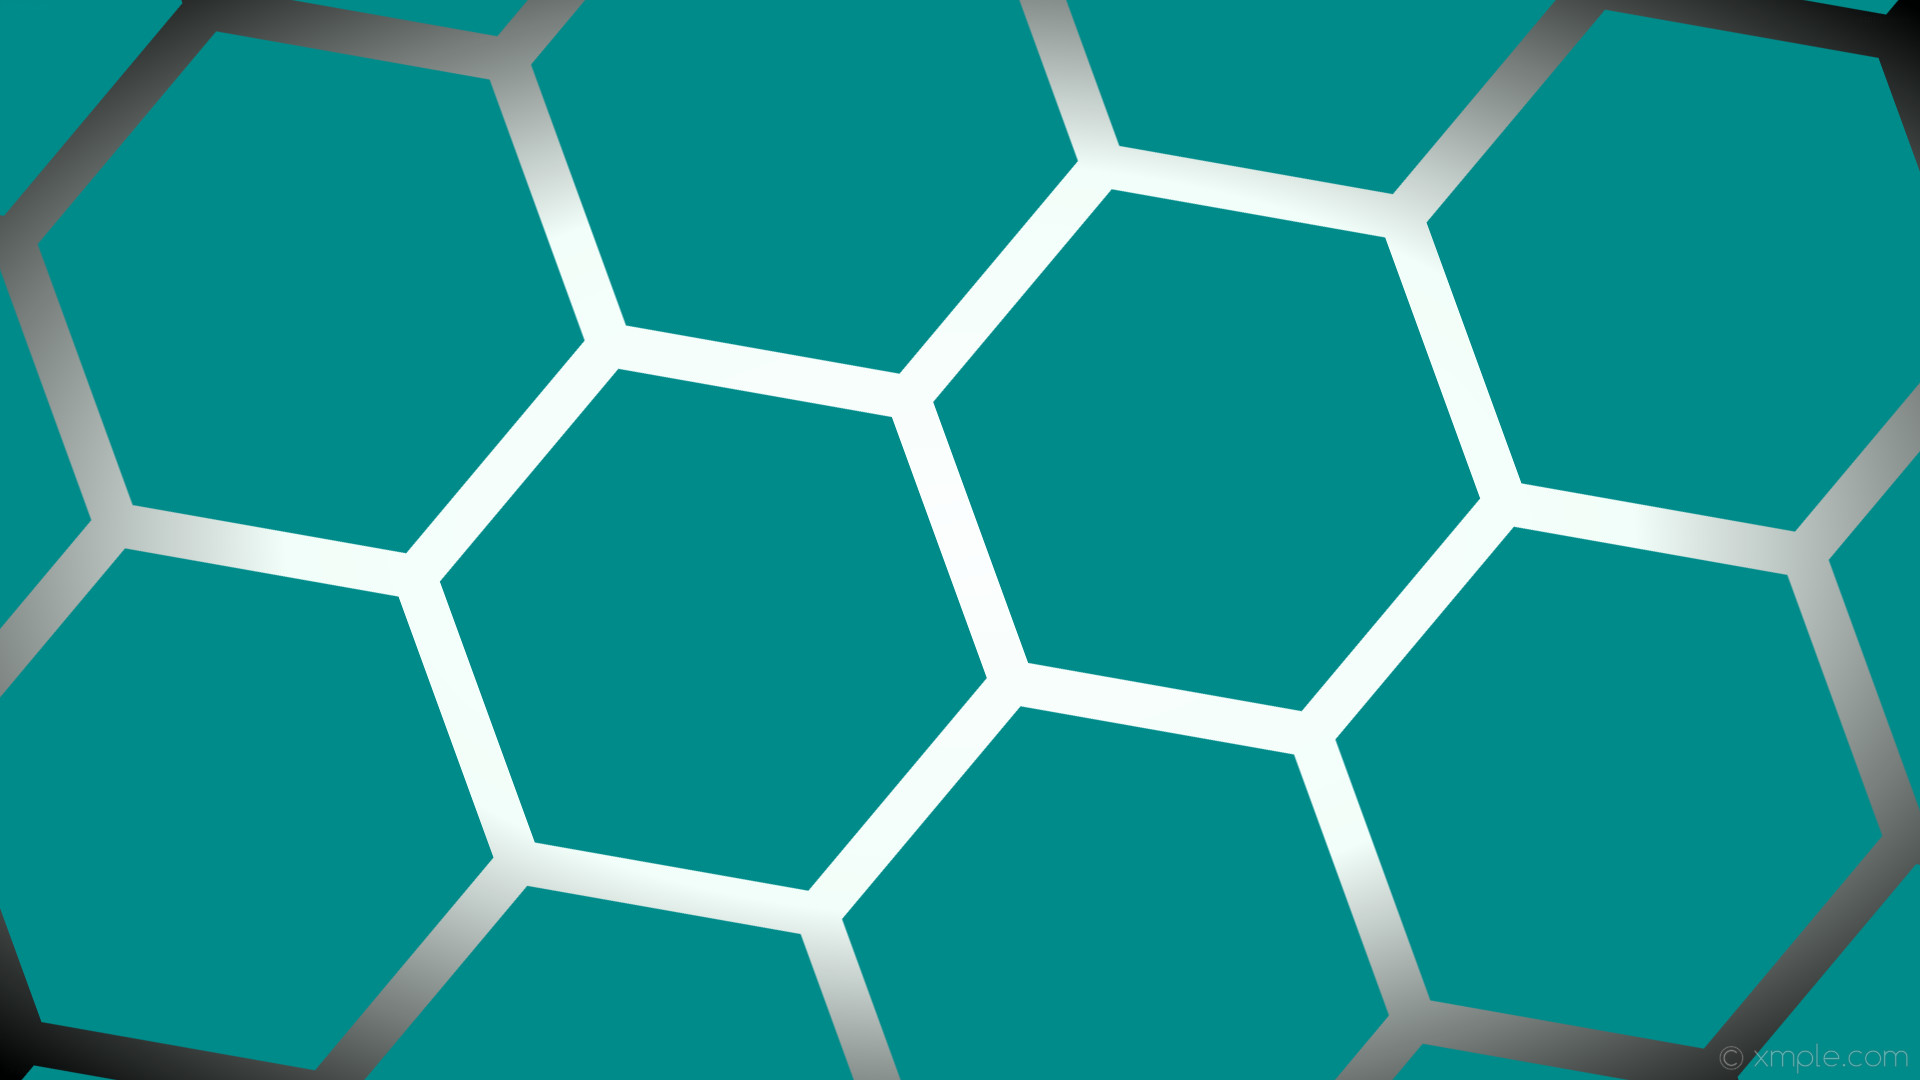 1920x1080 wallpaper glow hexagon white green gradient black dark cyan mint cream  #008b8b #ffffff #